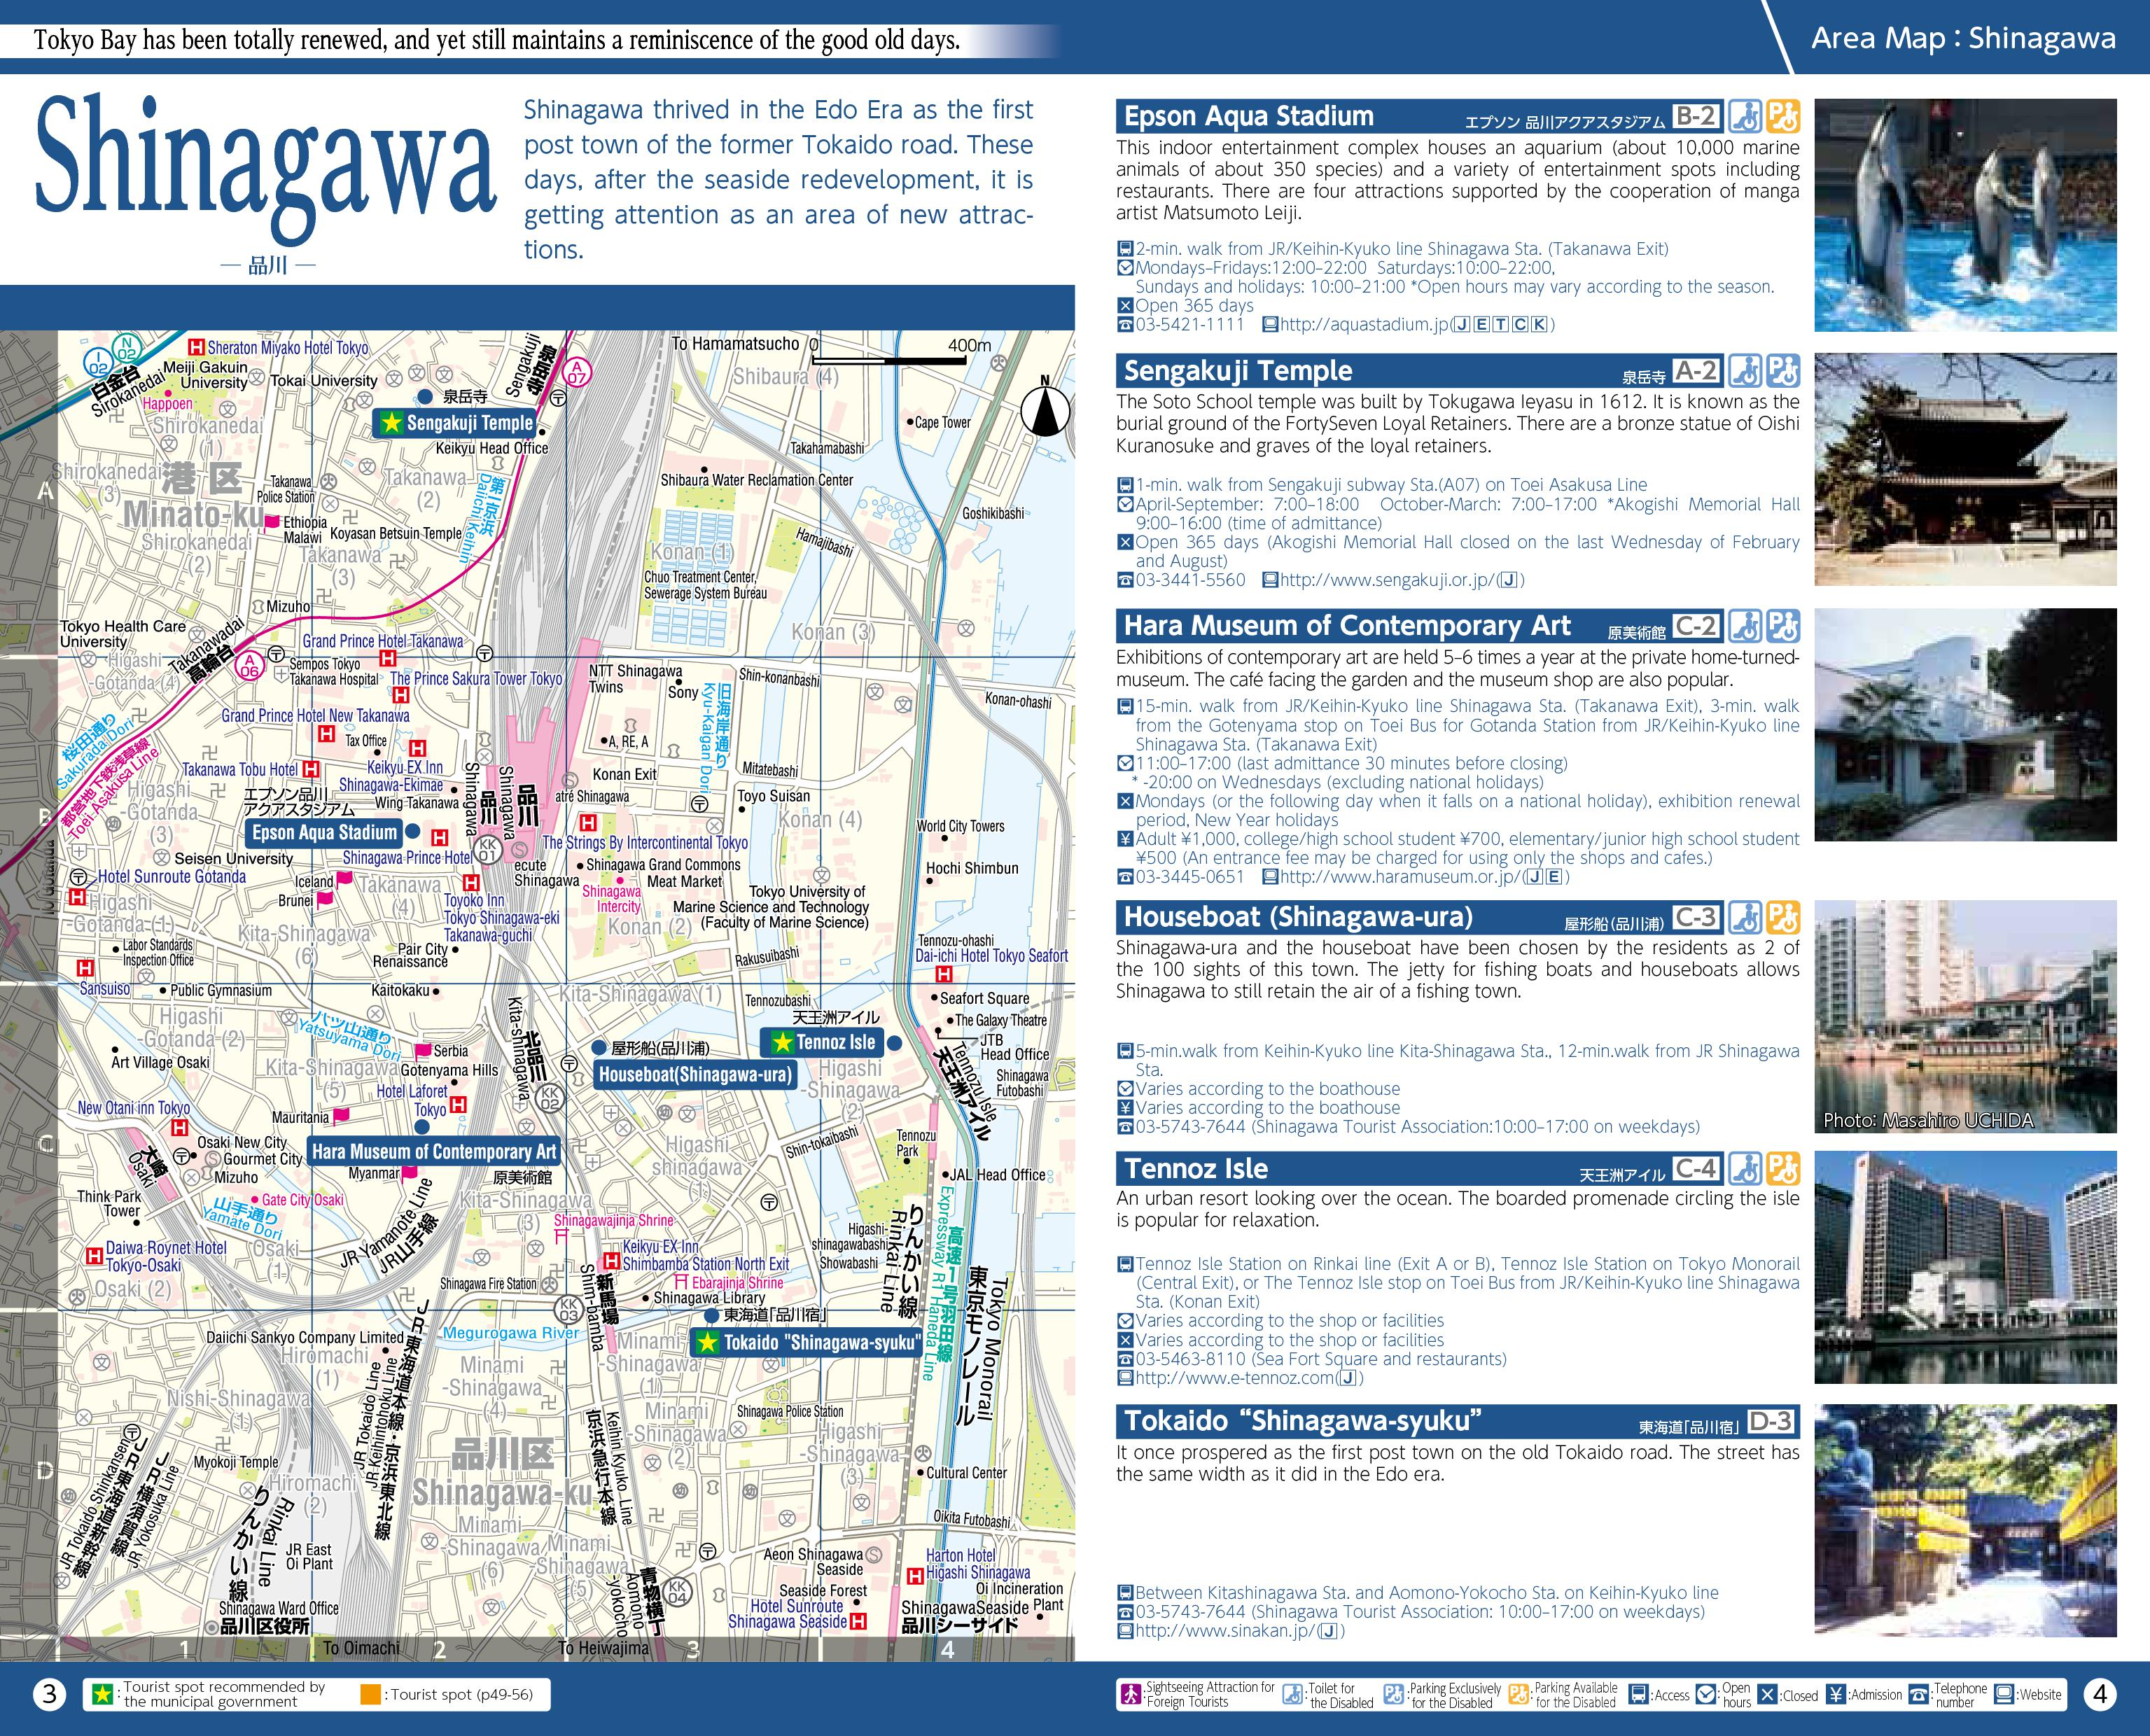 Shinagawa map